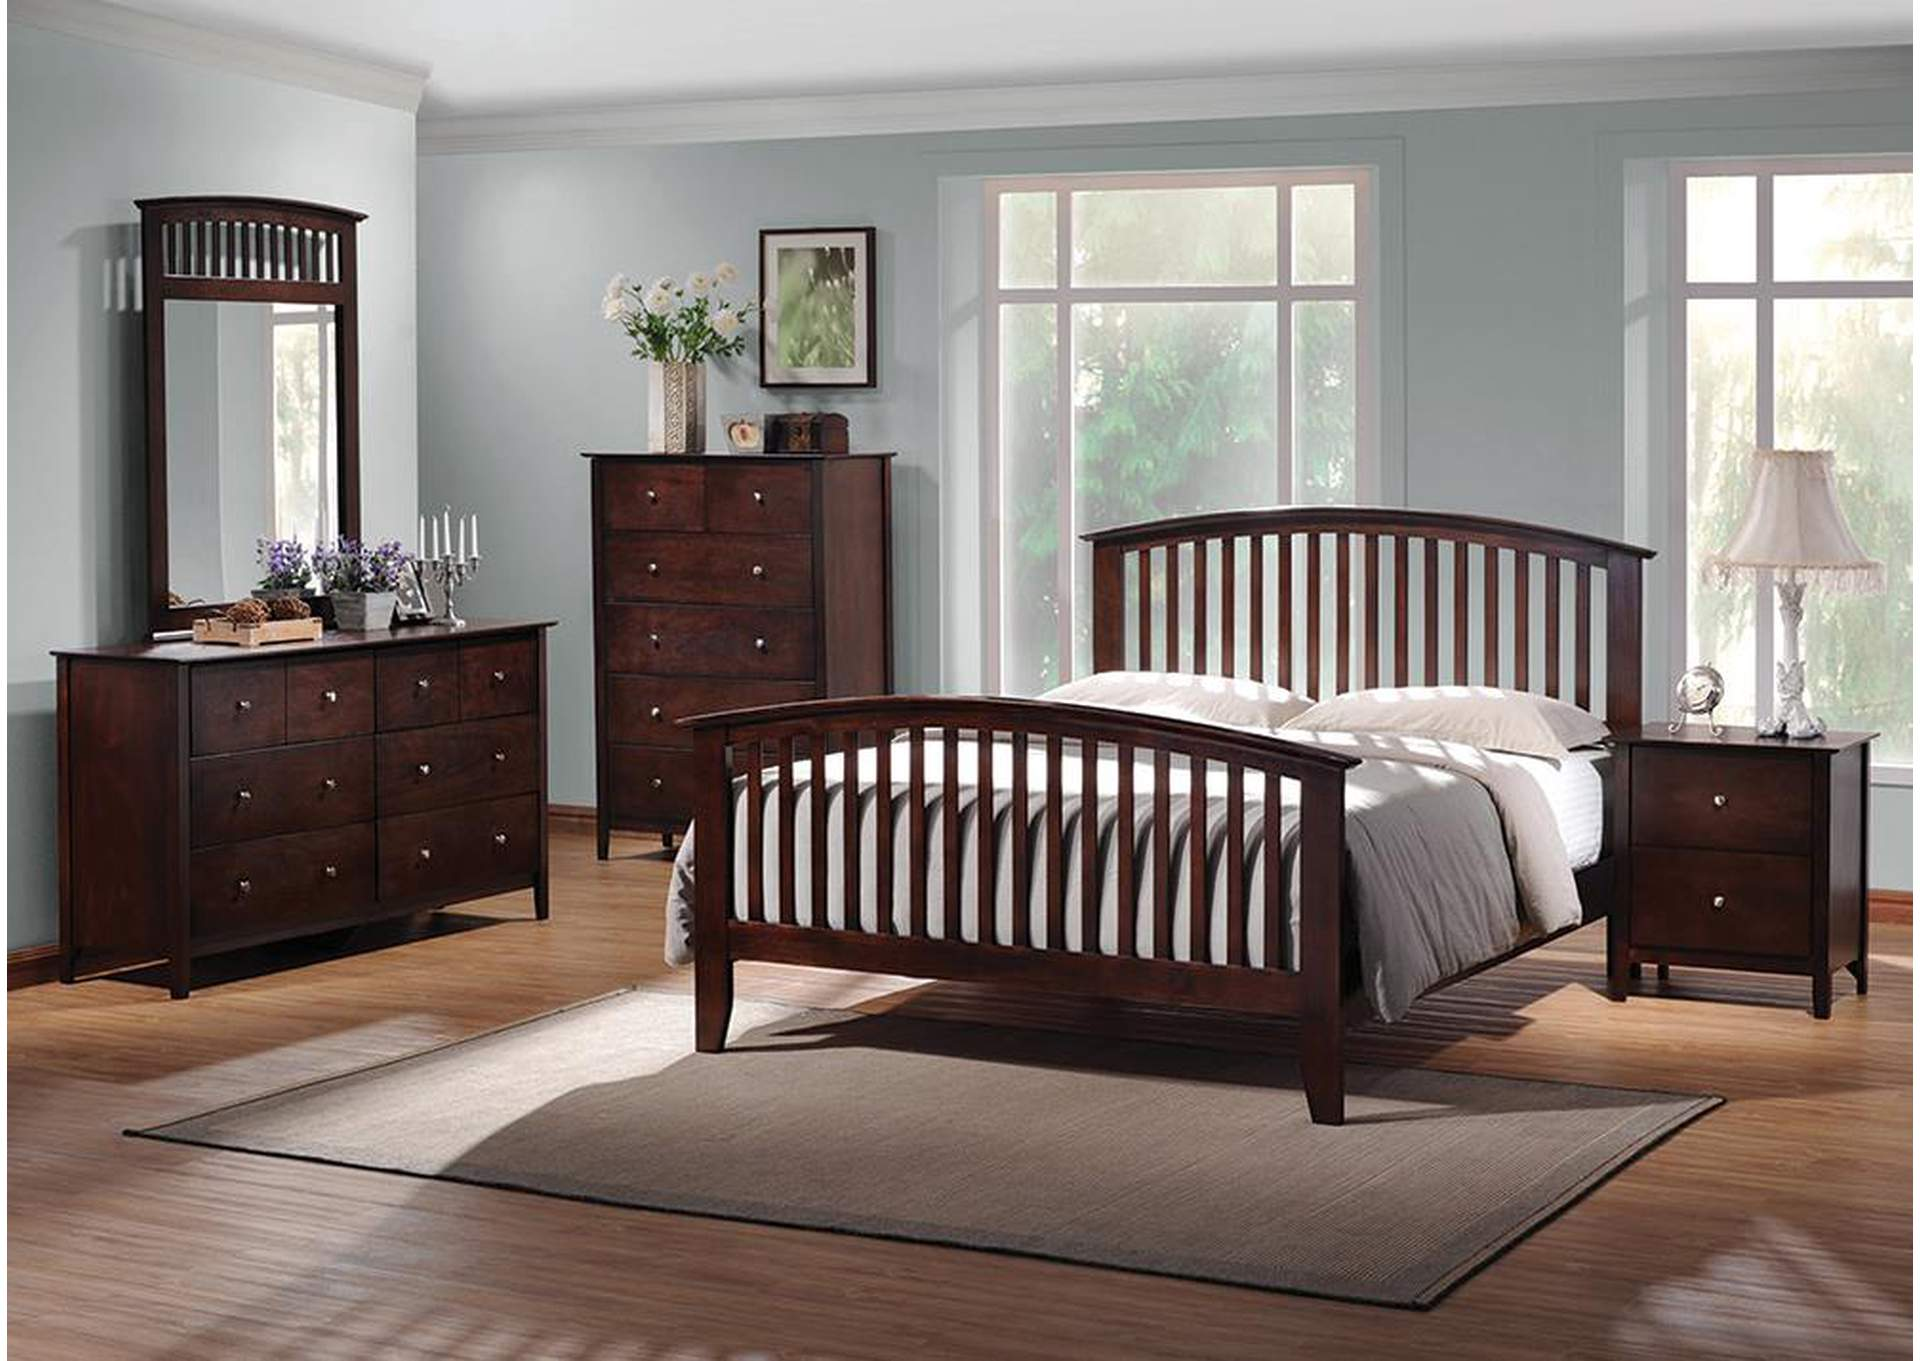 Tia Cappuccino Eastern King Bed,Coaster Furniture